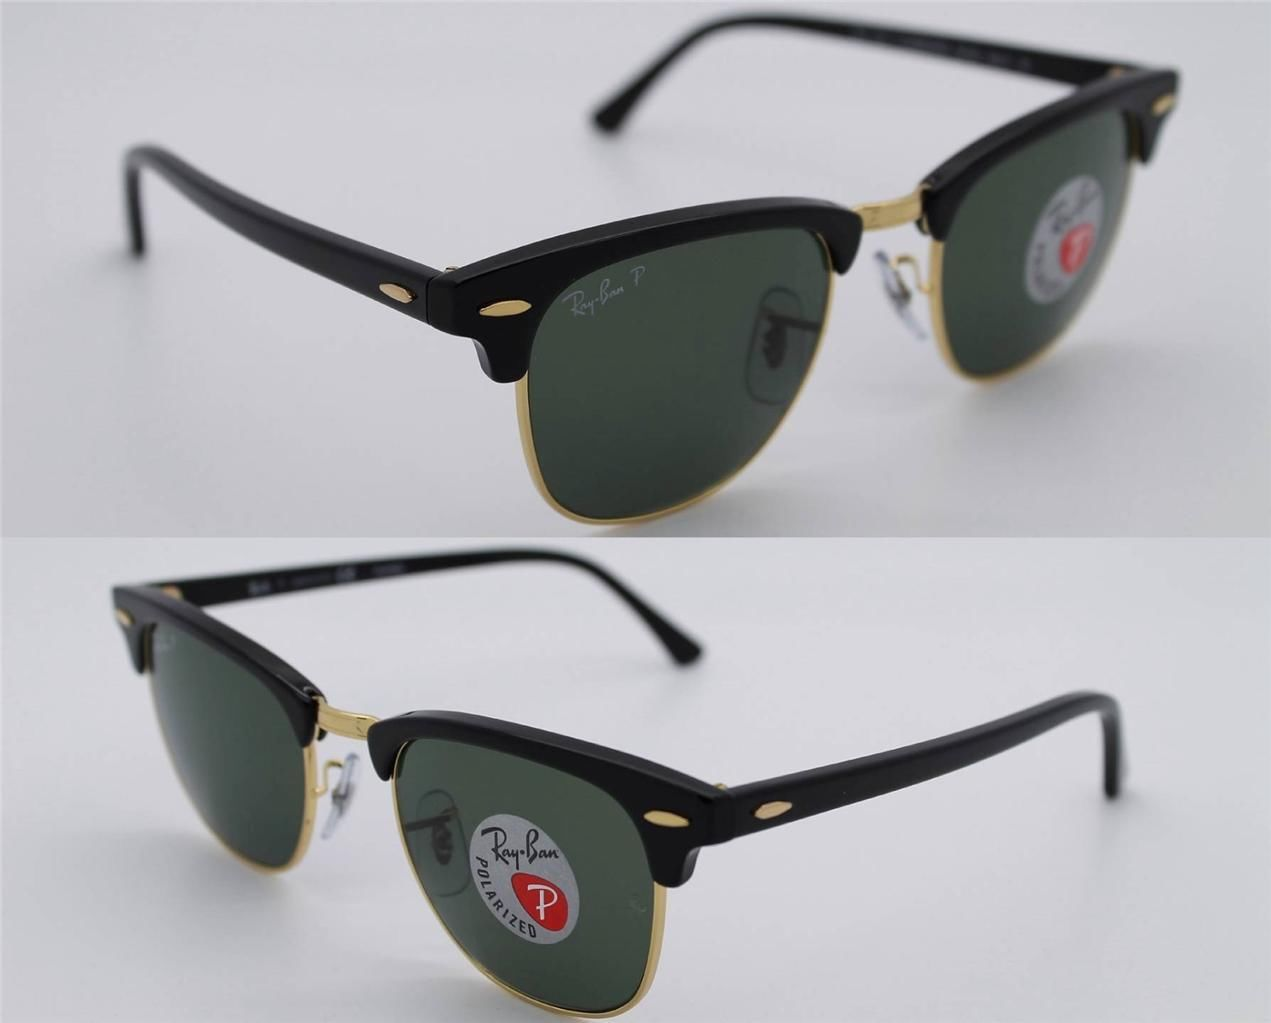 7b977a9f5 ray ban clubmaster 3016 made in china